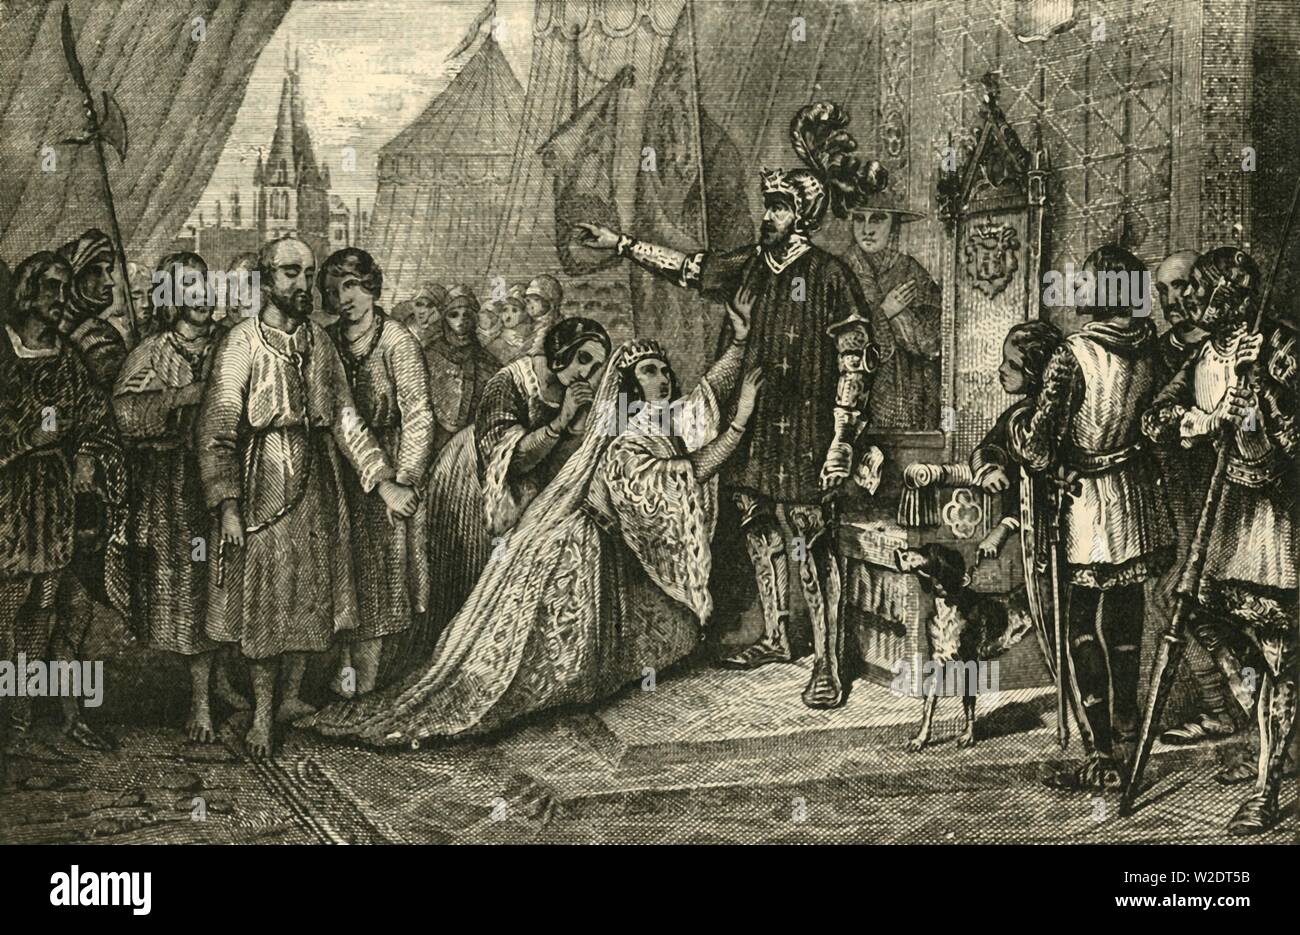 """'Queen Phillippa Interceding for the Citizens of Calais', (1347), 1890. Philippa of Hainault successfully persuaded her husband King Edward III to spare the lives of the Burghers of Calais during the Hundred Years War. From """"Cassell's Illustrated Universal History, Vol. III - The Middle Ages"""", by Edmund Ollier. [Cassell and Company, Limited, London, Paris and Melbourne, 1890. ] - Stock Image"""